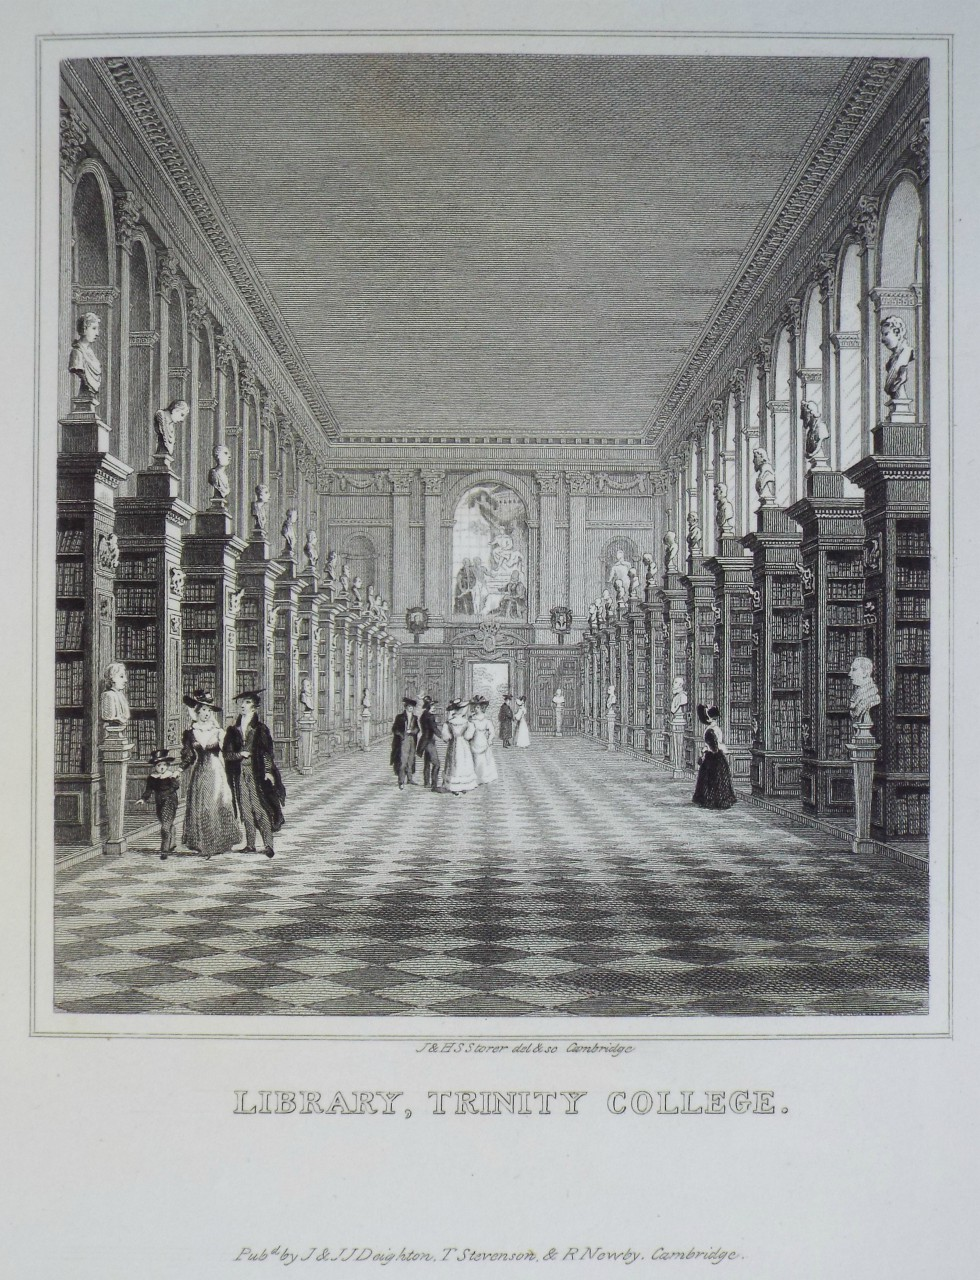 Print - Library, Trinity College. - Storer